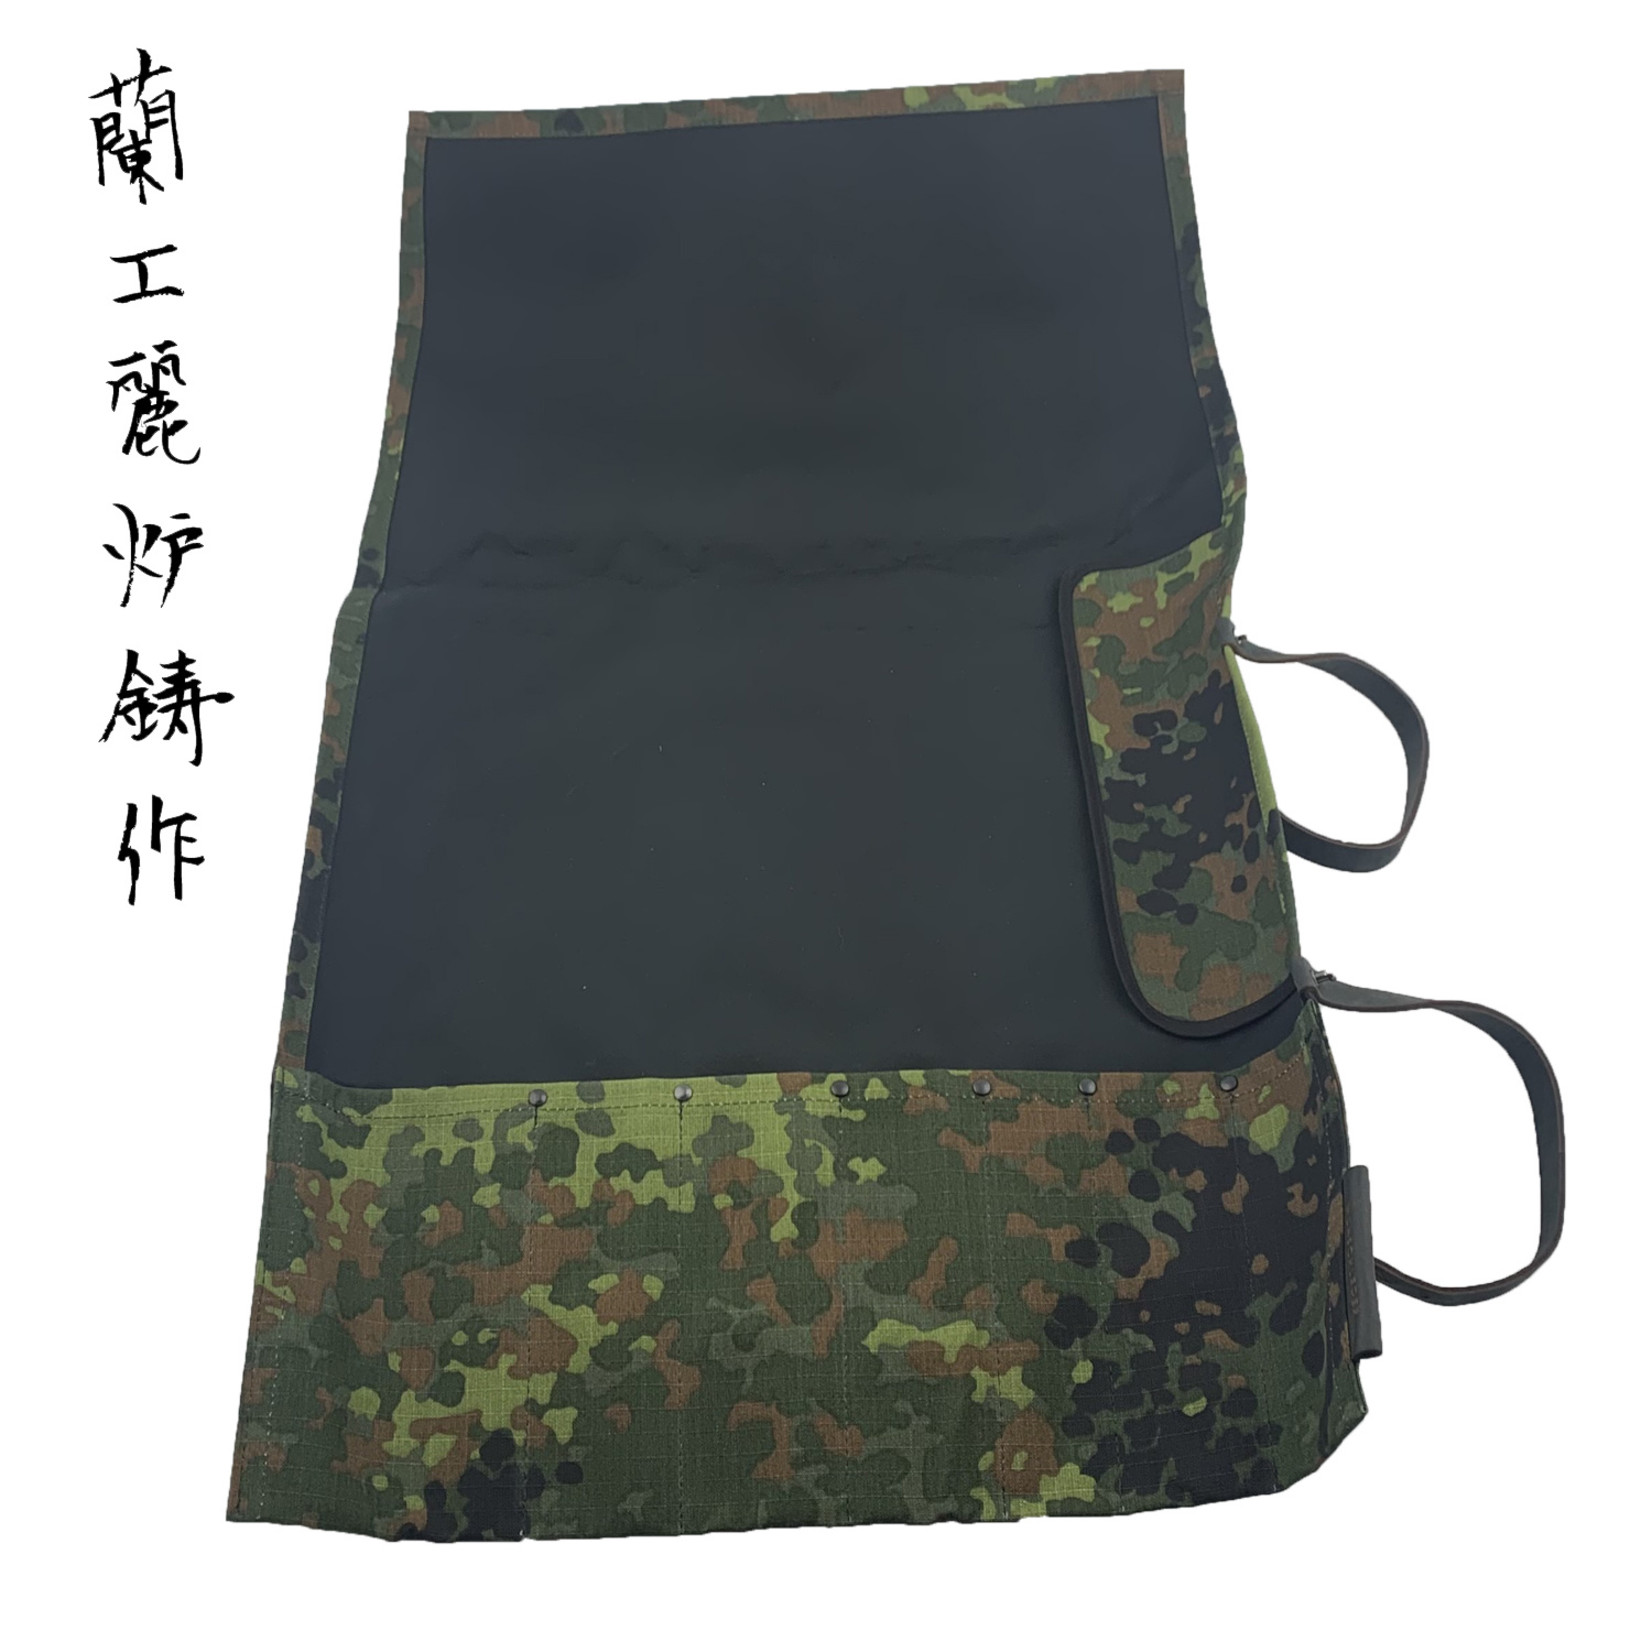 WUNSCHLEDER Roll 7 items Canvas Camouflage 17A00822-00